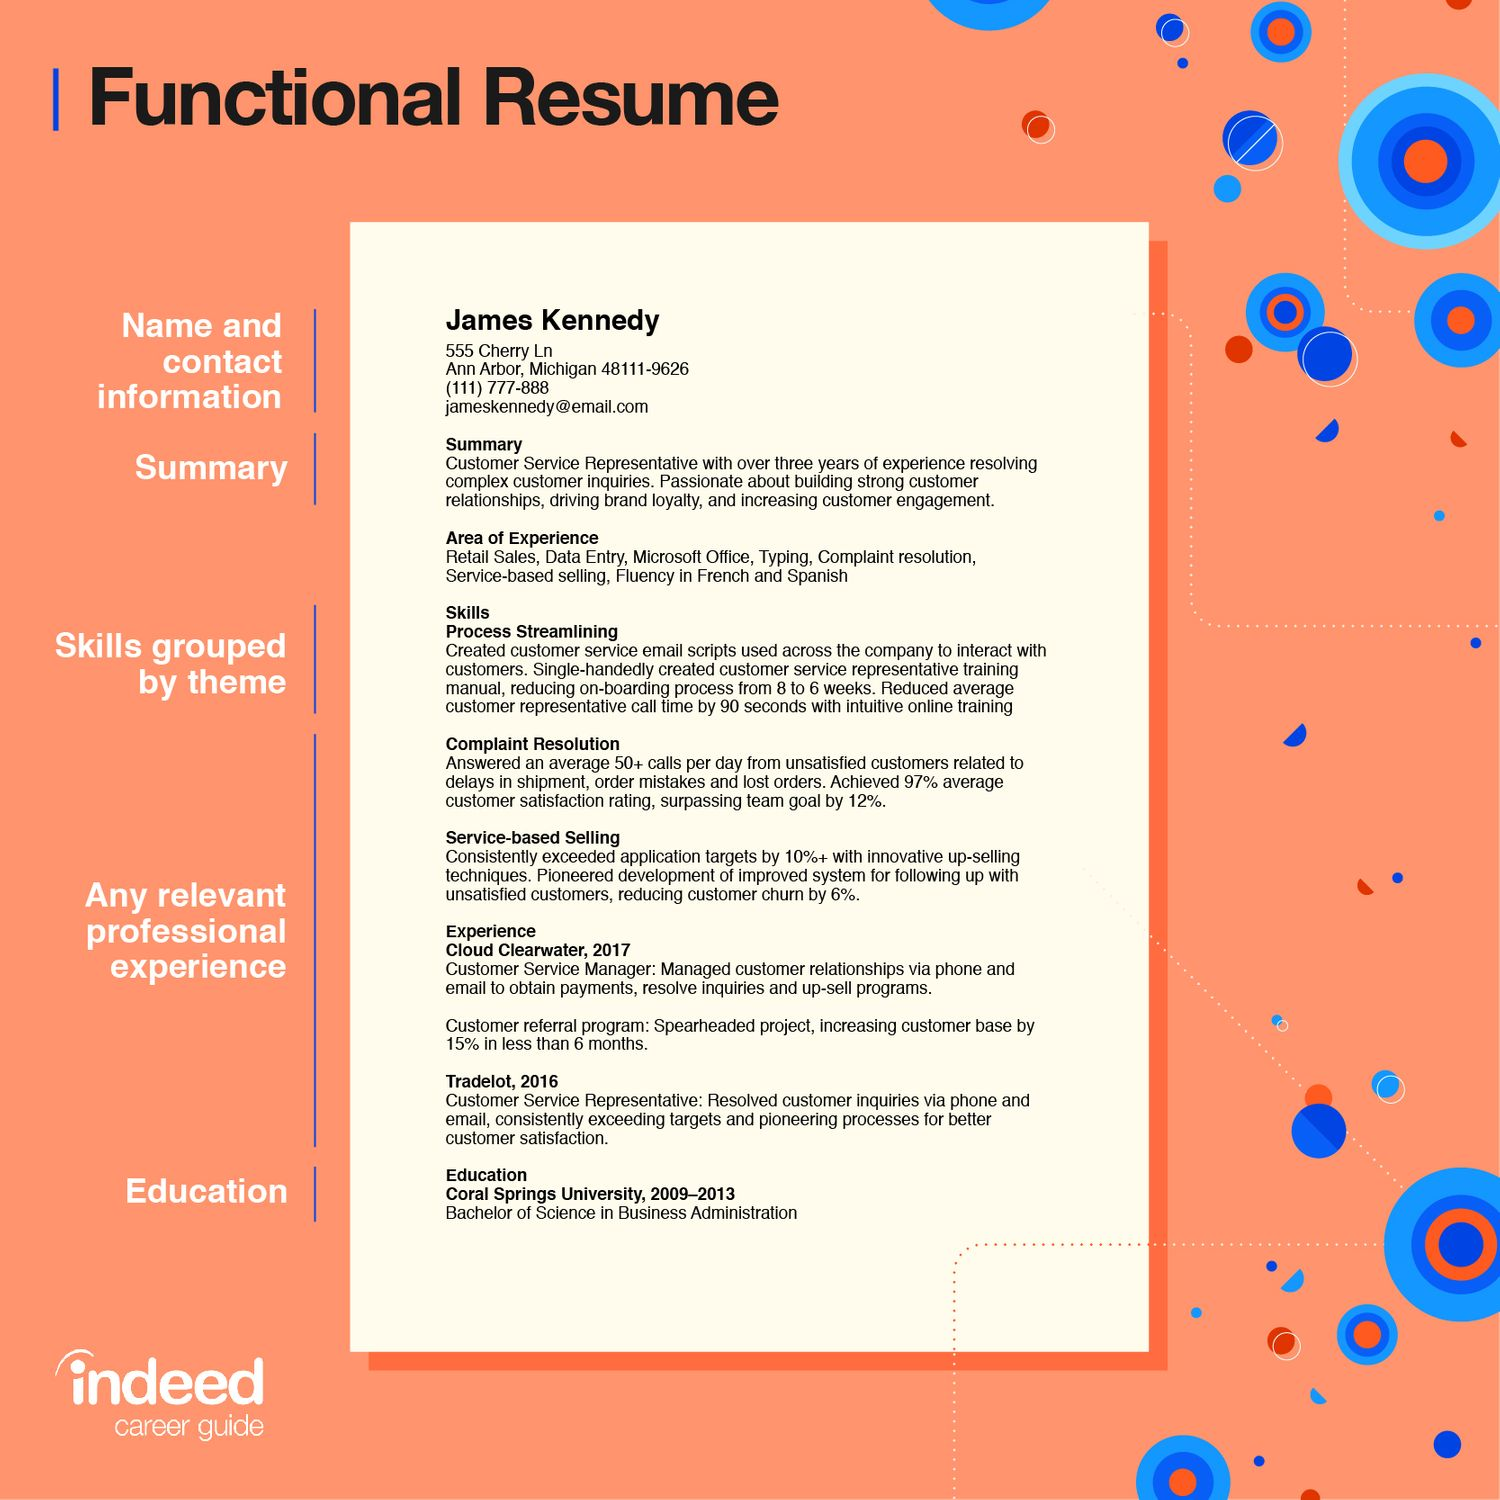 functional resume definition tips and examples indeed vs chronological resized order of Resume Functional Vs Chronological Resume